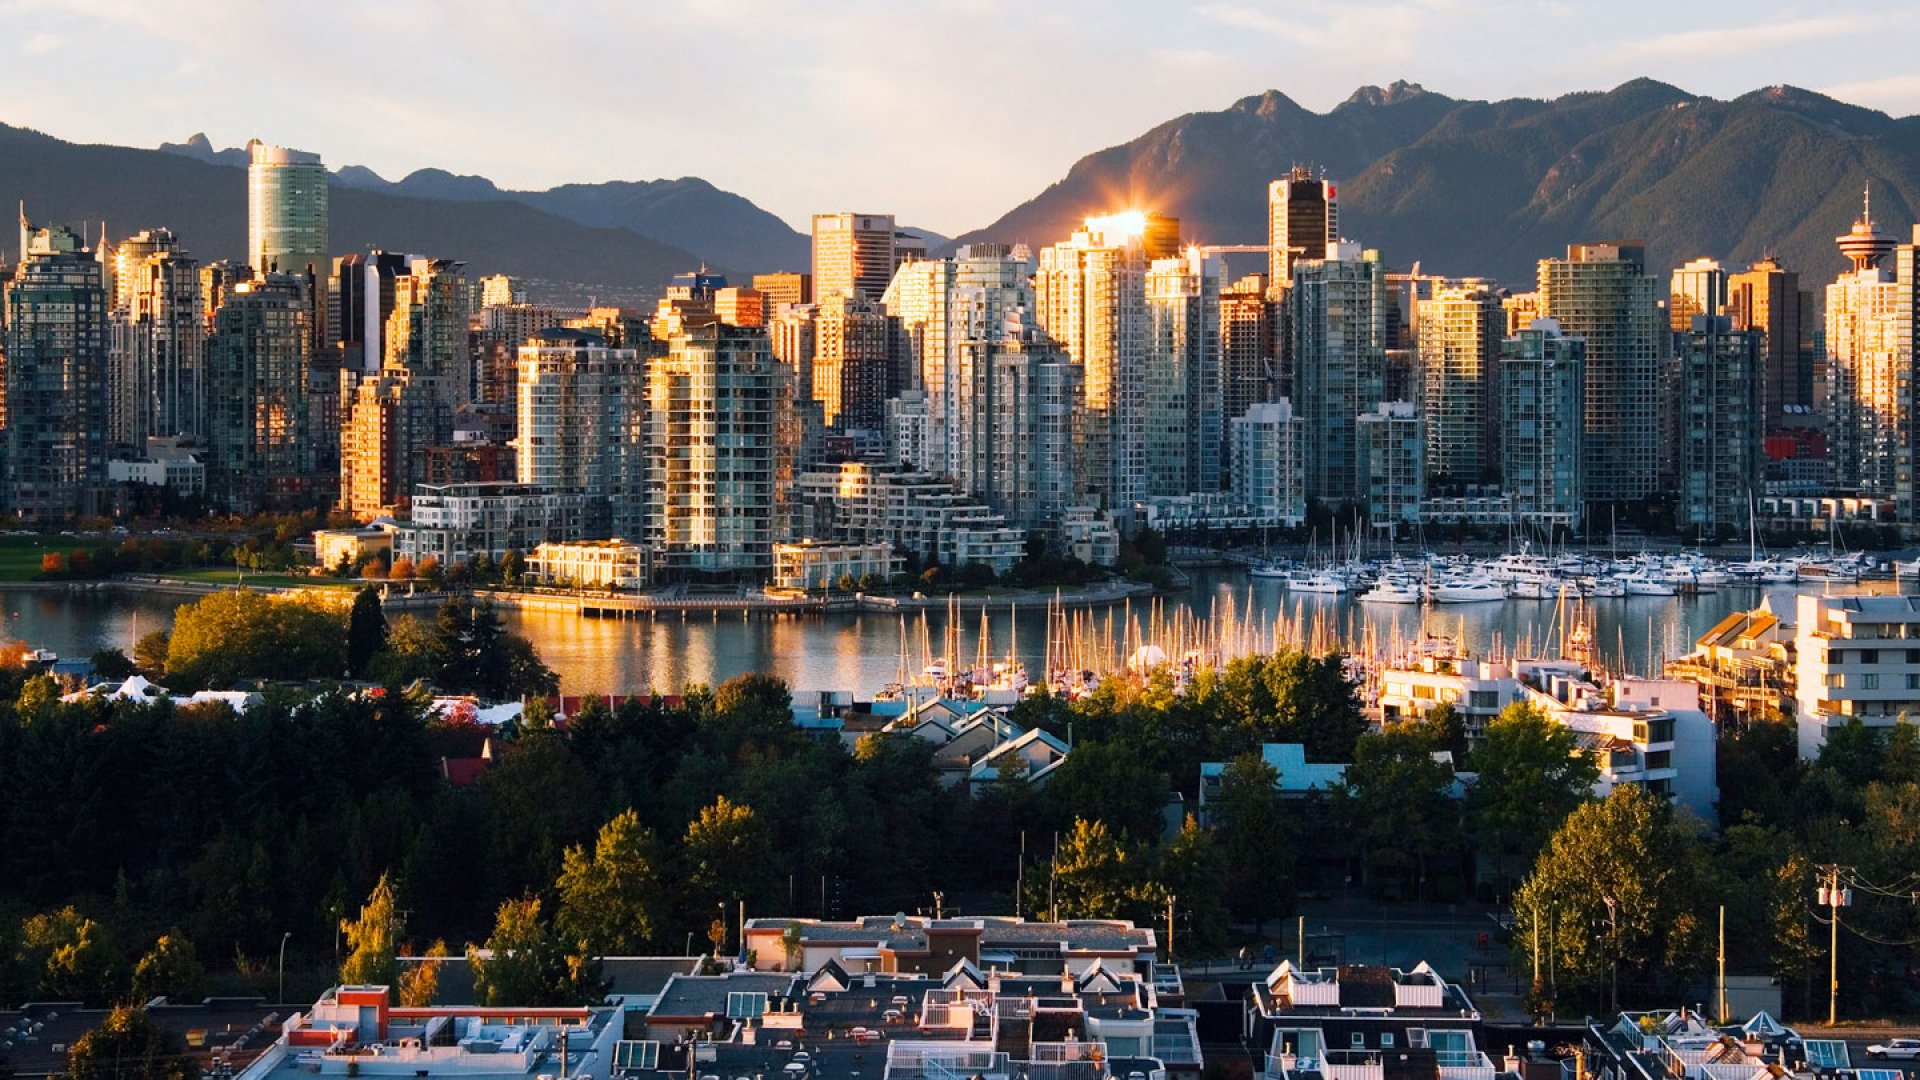 6 Reasons Vancouver Is Hot for Startups